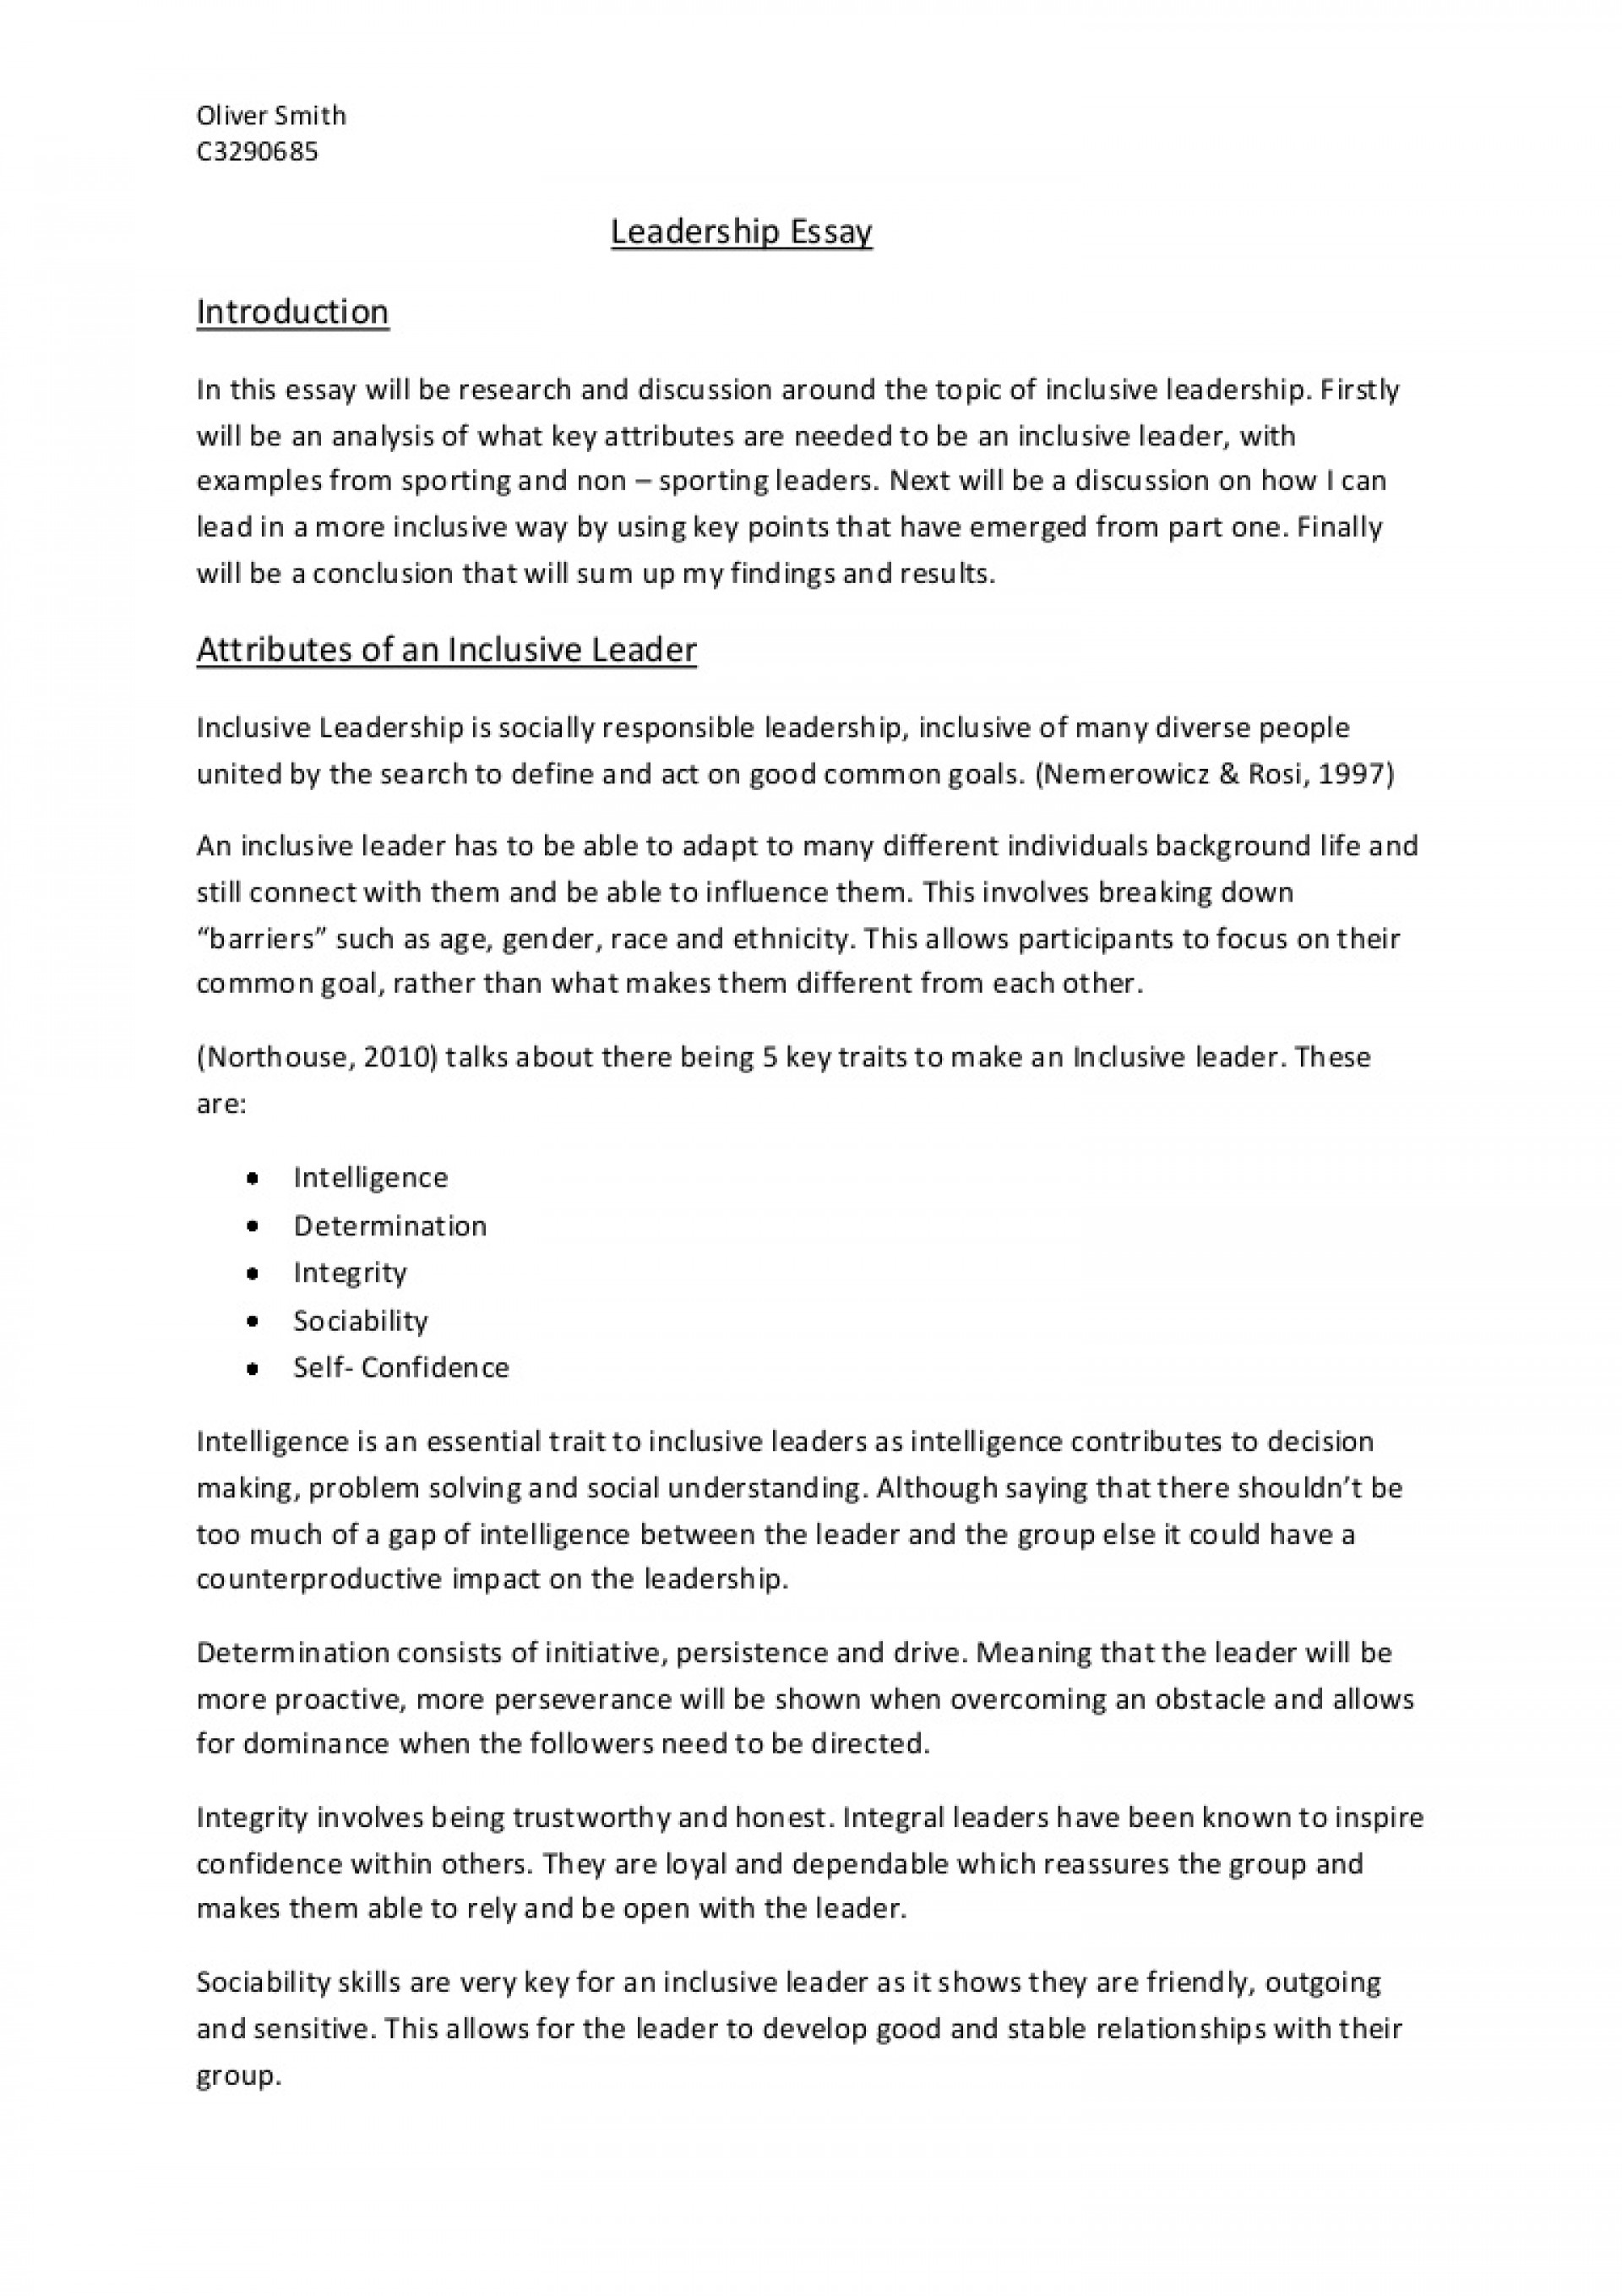 001 Essay Example What Are The Qualities Of Good Leader Leadershipessay Phpapp01 Thumbnail Formidable A Characteristics Pdf Introduction Make 1920